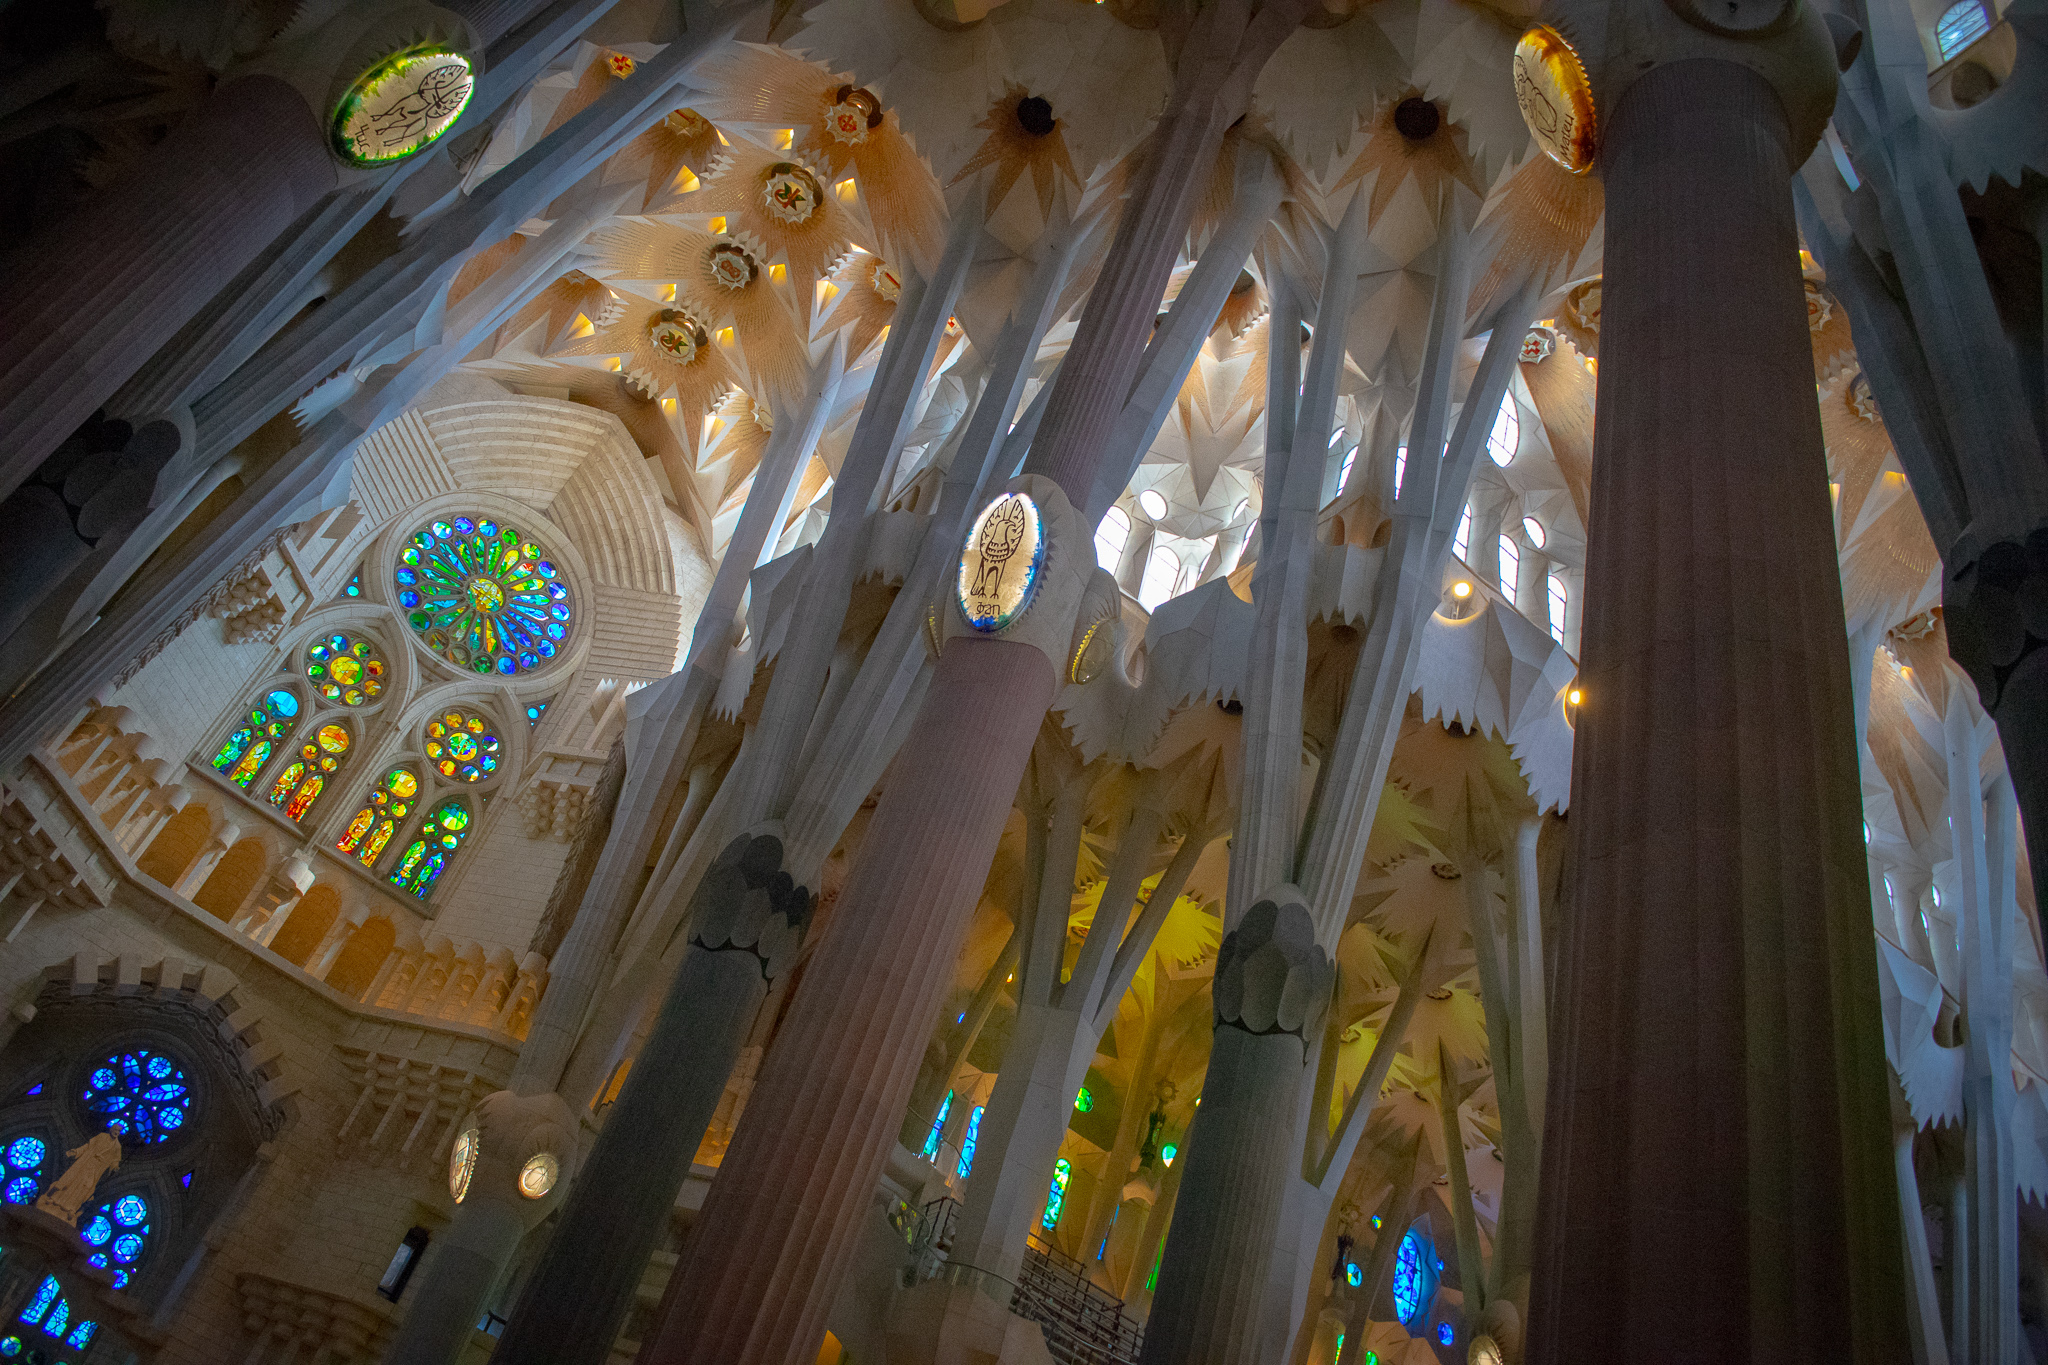 The interior of Sagrada Família is absolutely jaw-dropping.